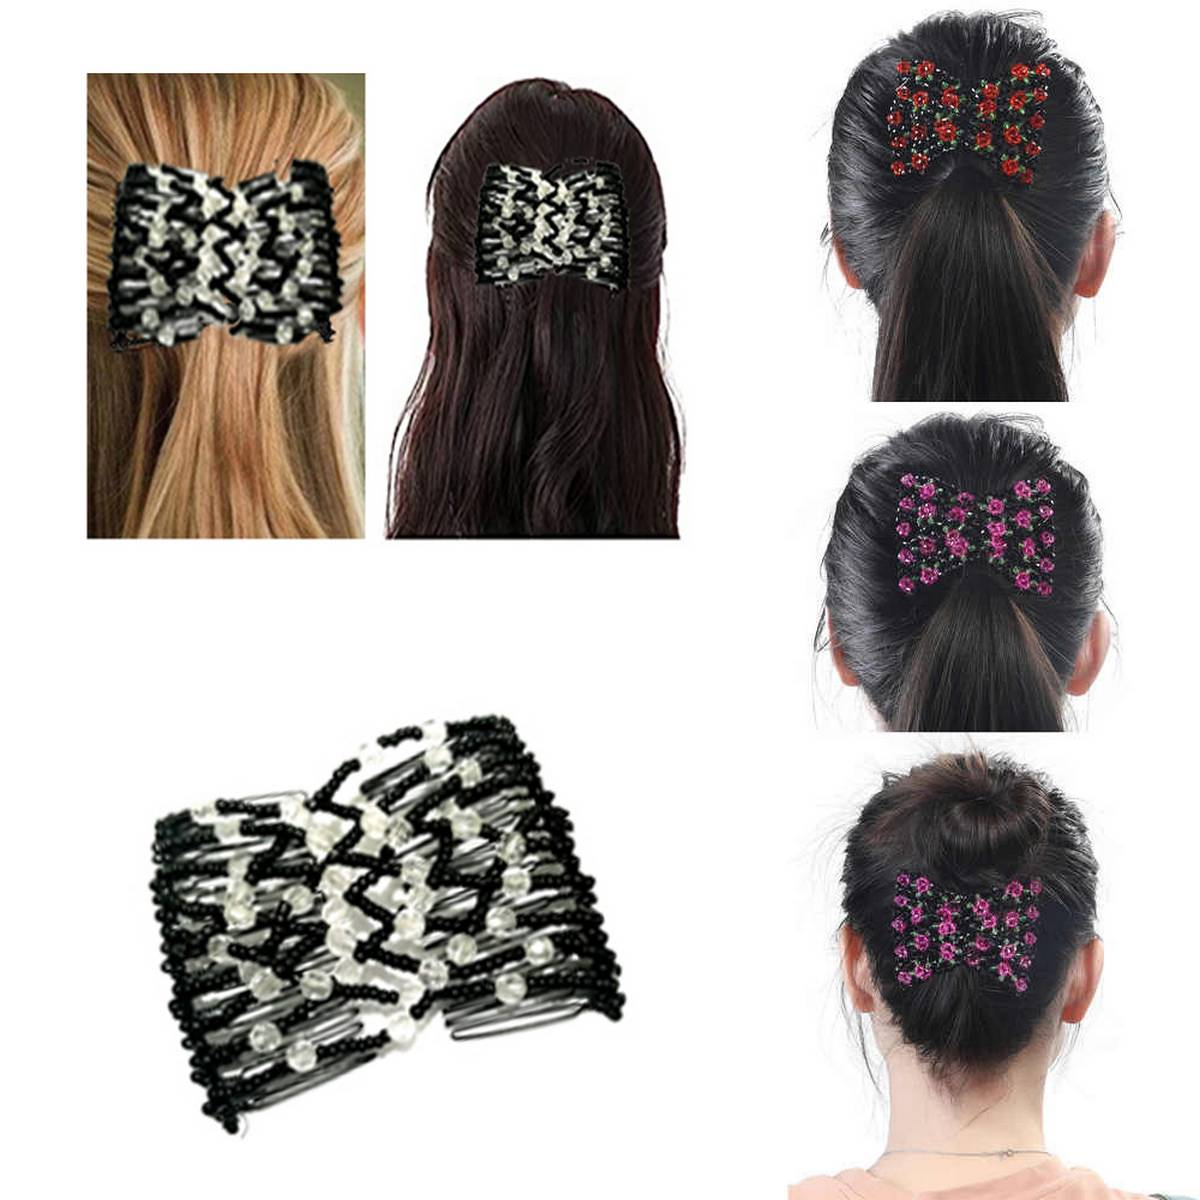 Magic Comb Clip for Women Girls Beads Flower Barrette Hairpin Elastic Double Combs Clips